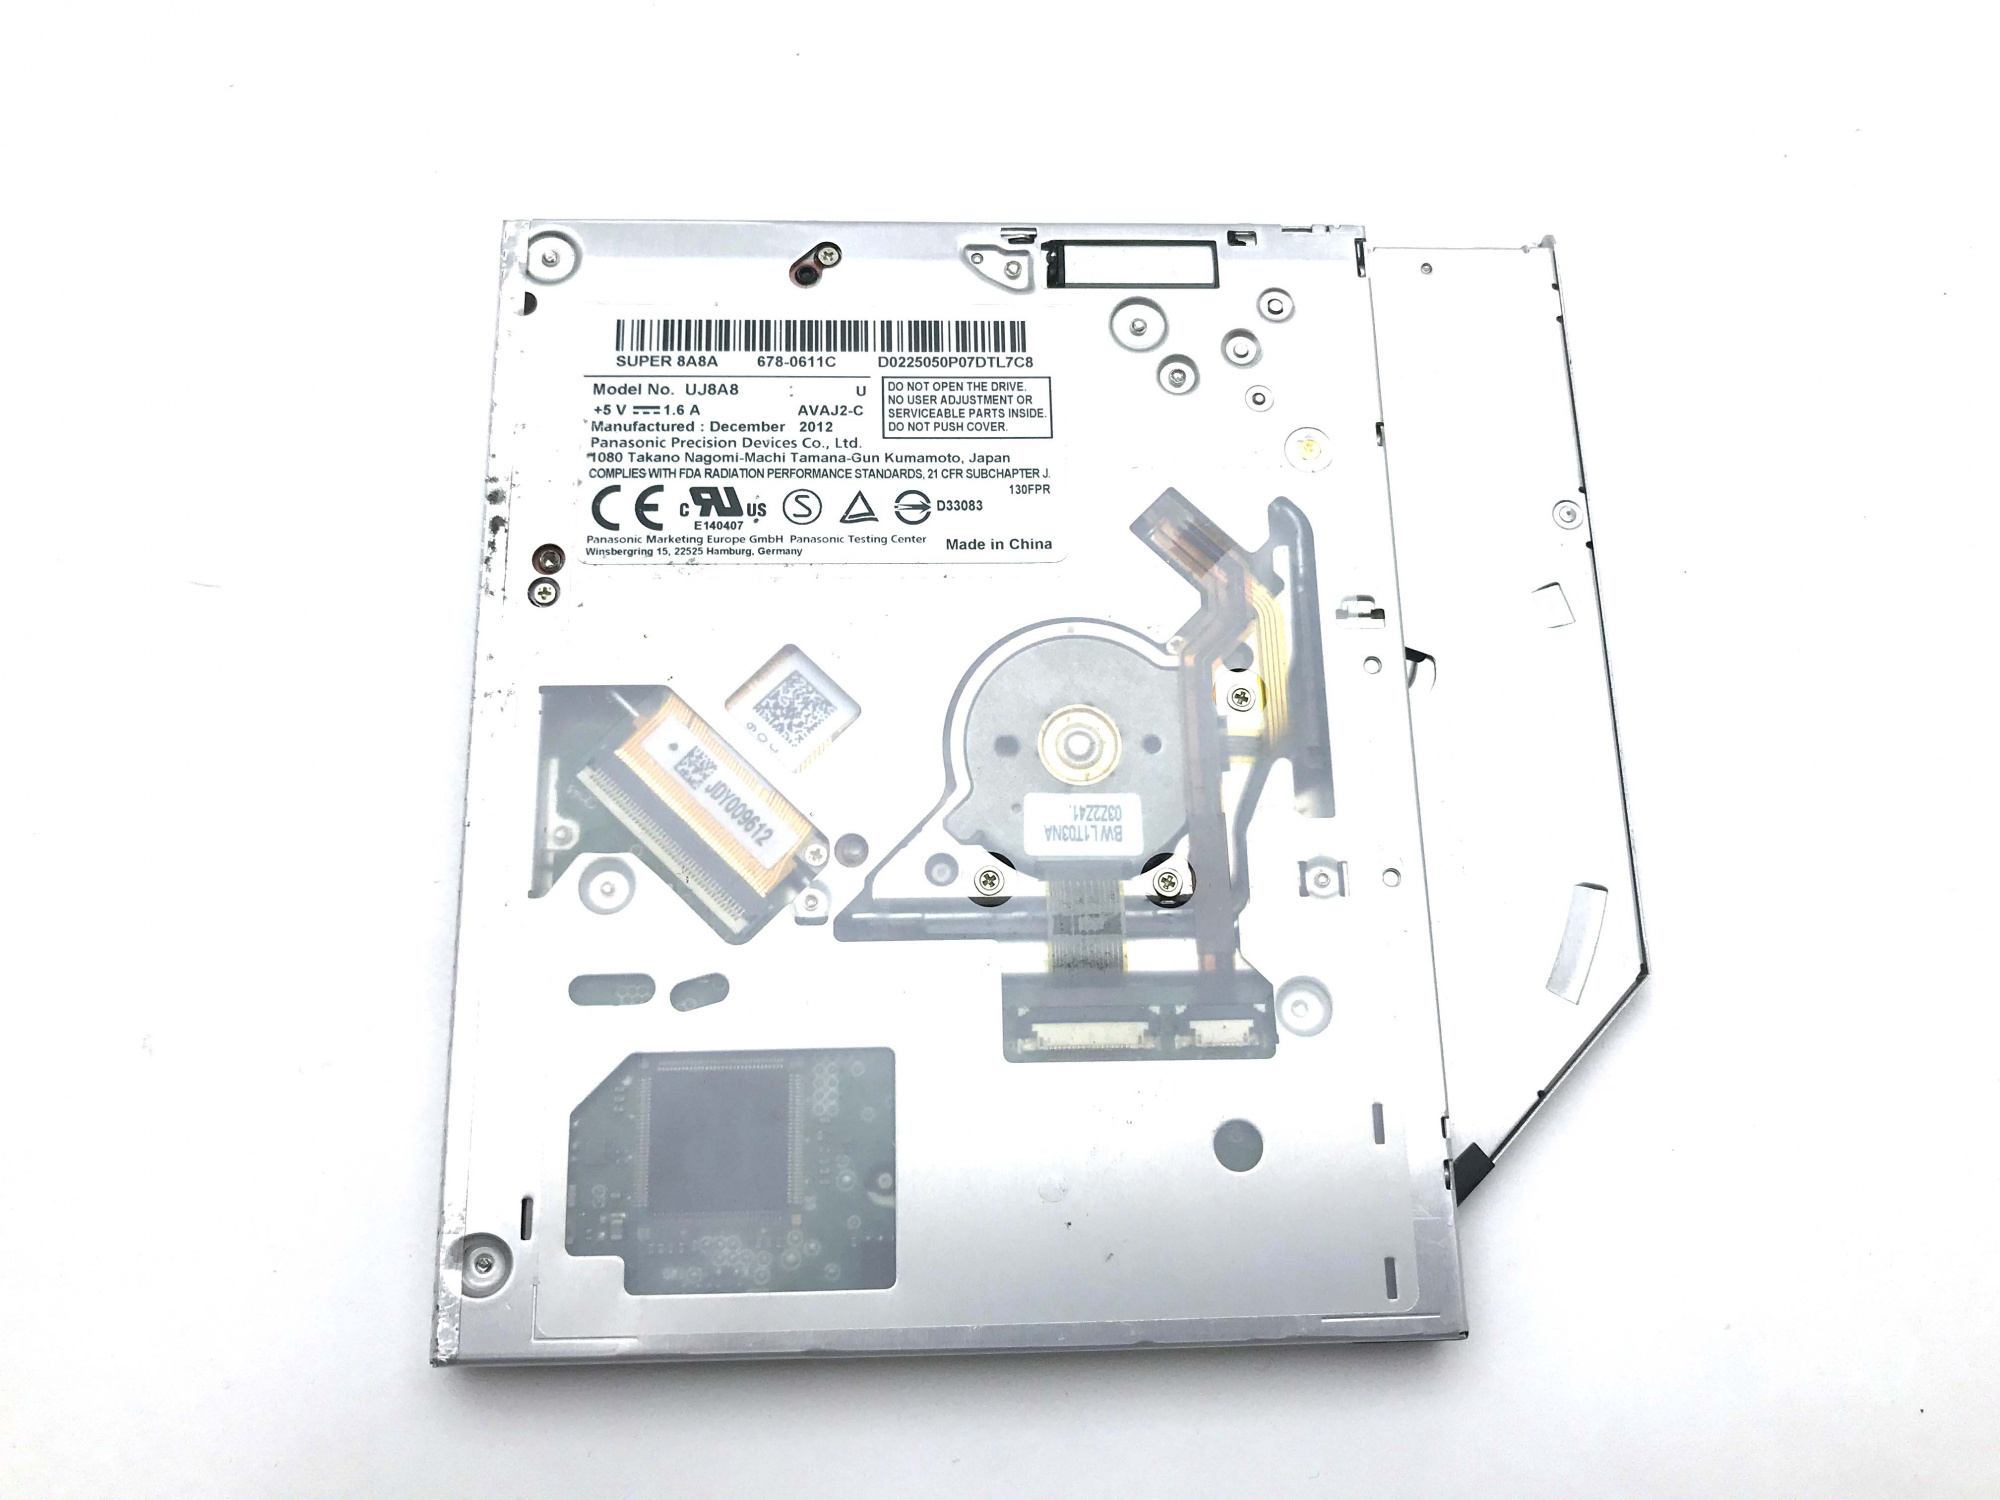 DVD±RW SATA Panasonic (UJ8A8) Super Slim